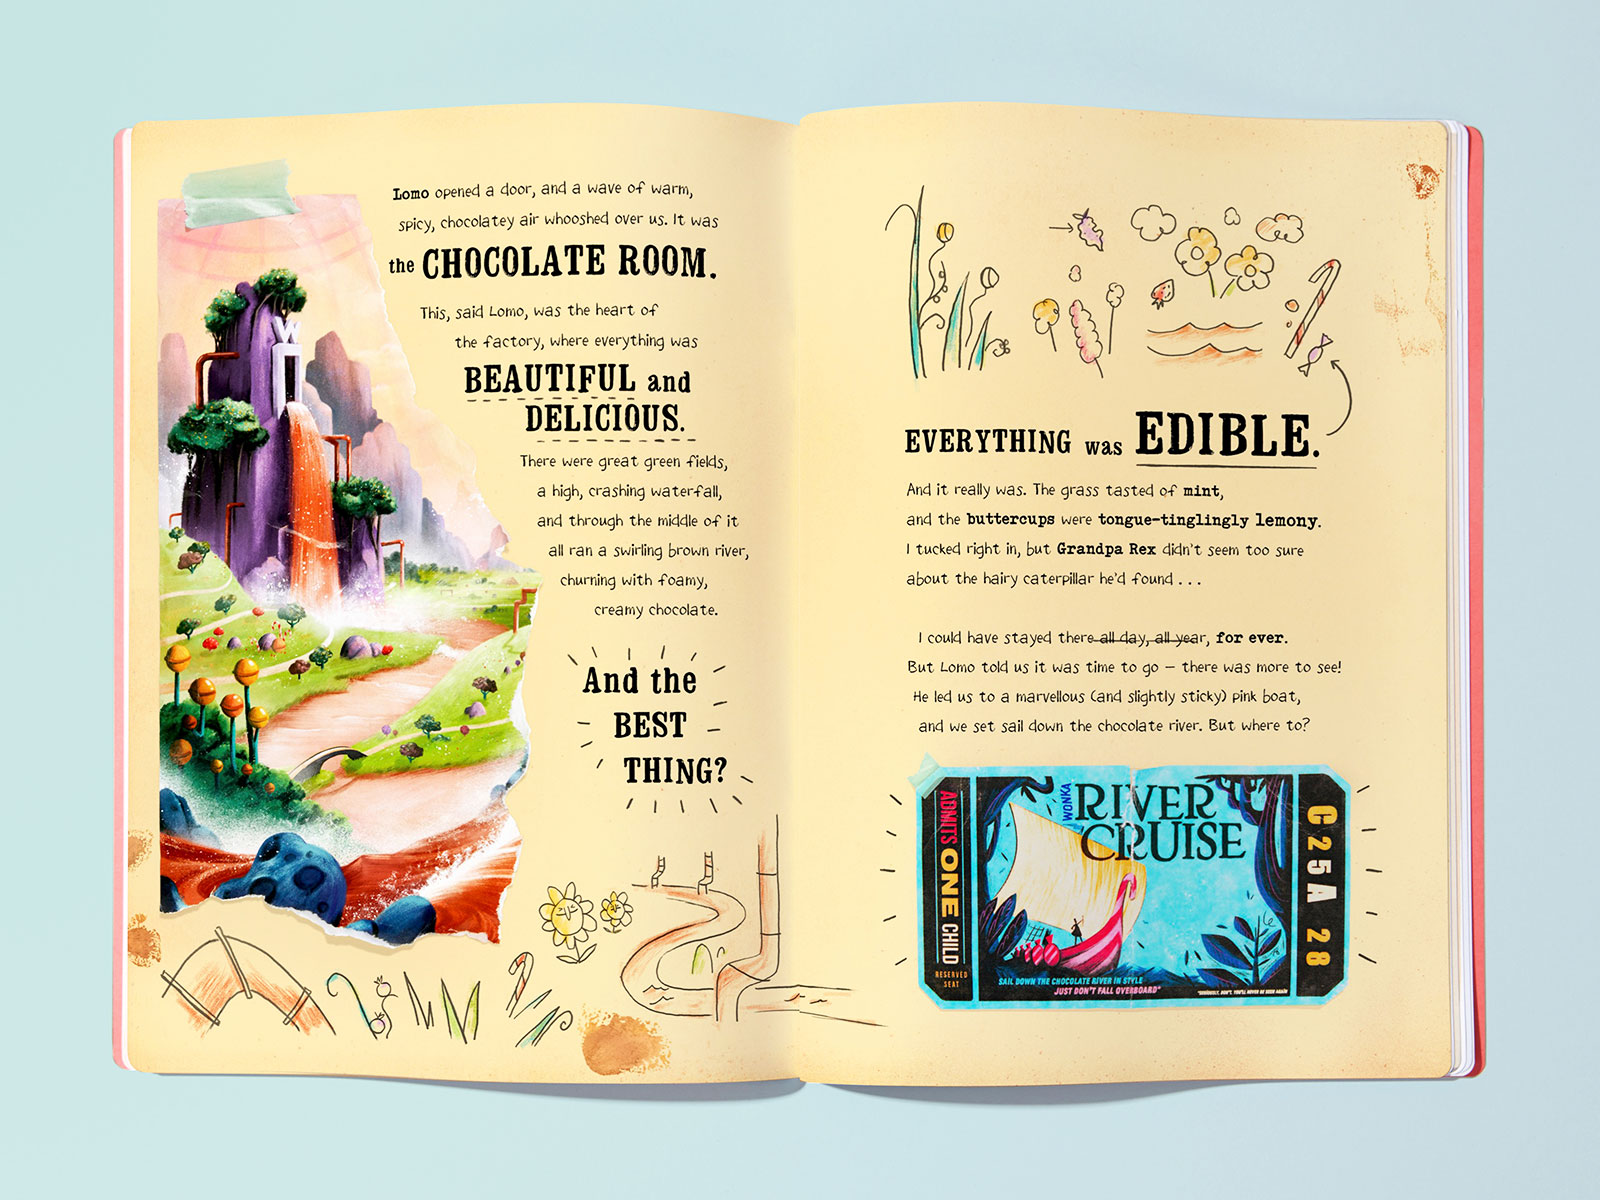 willy wonka book offers a personalized adventure through the